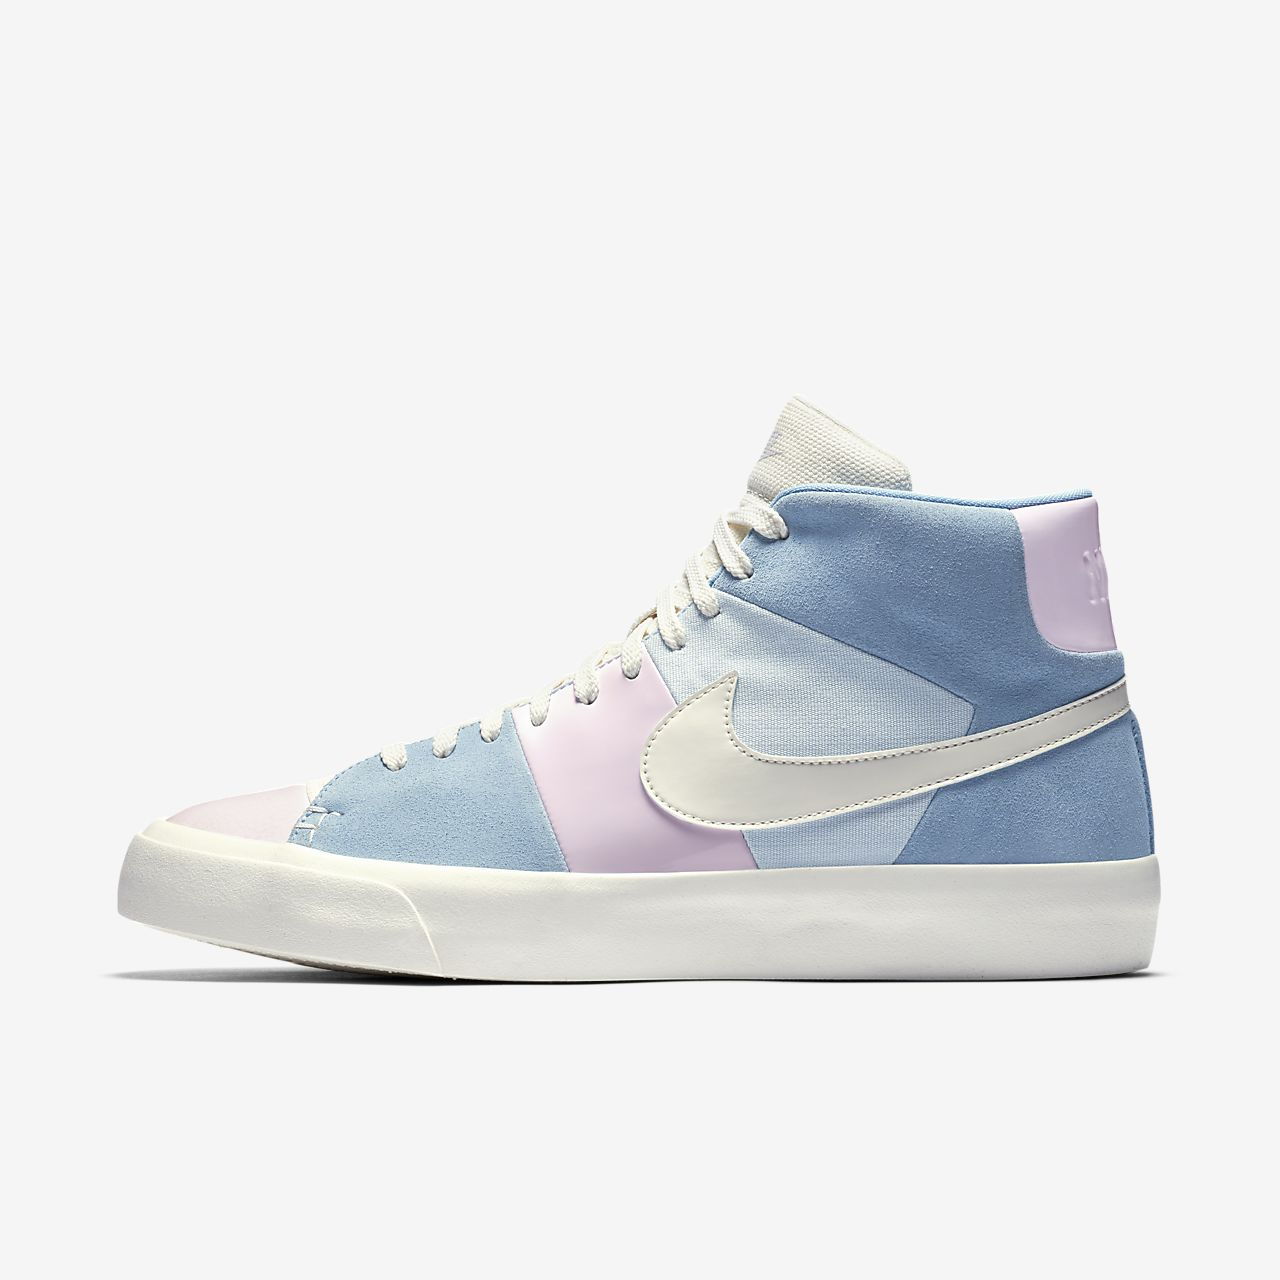 Qs Nike Chaussure Royal Be Blazer Homme Easter Pour RBqAS